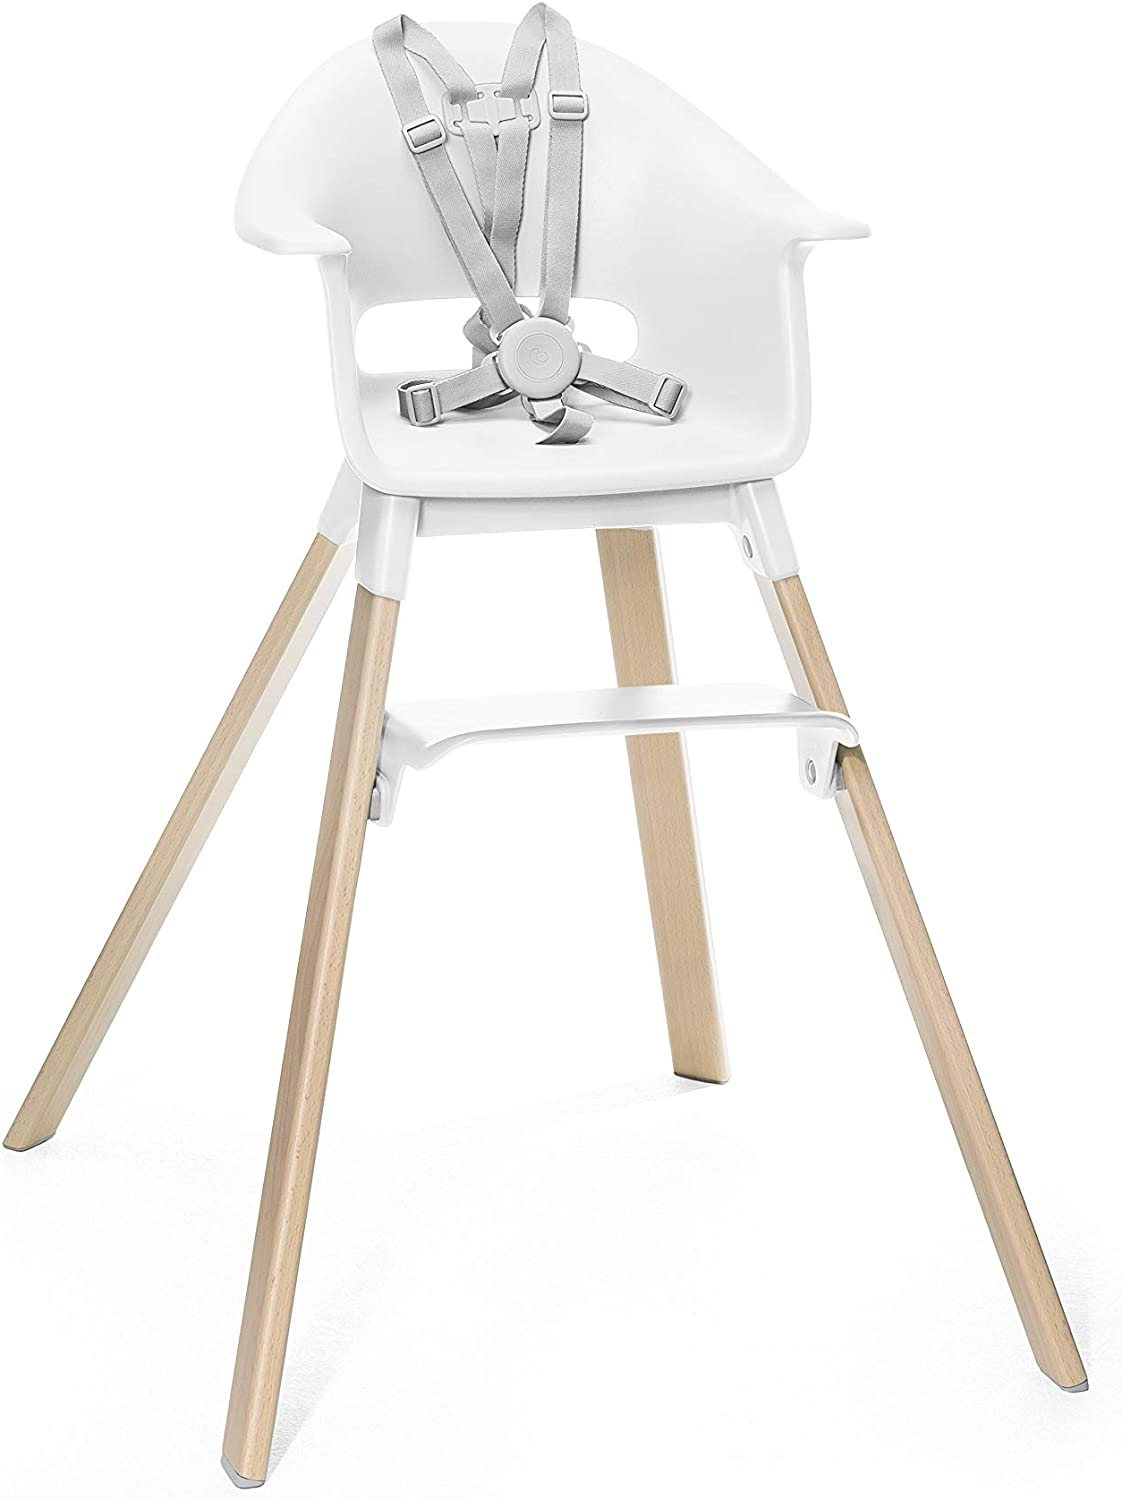 Colour: White Suitable from 6 Months to 3 Years Adjustable Grow-Along Chair for Children with Tray and Safety Harness Stokke Clikk High Chair